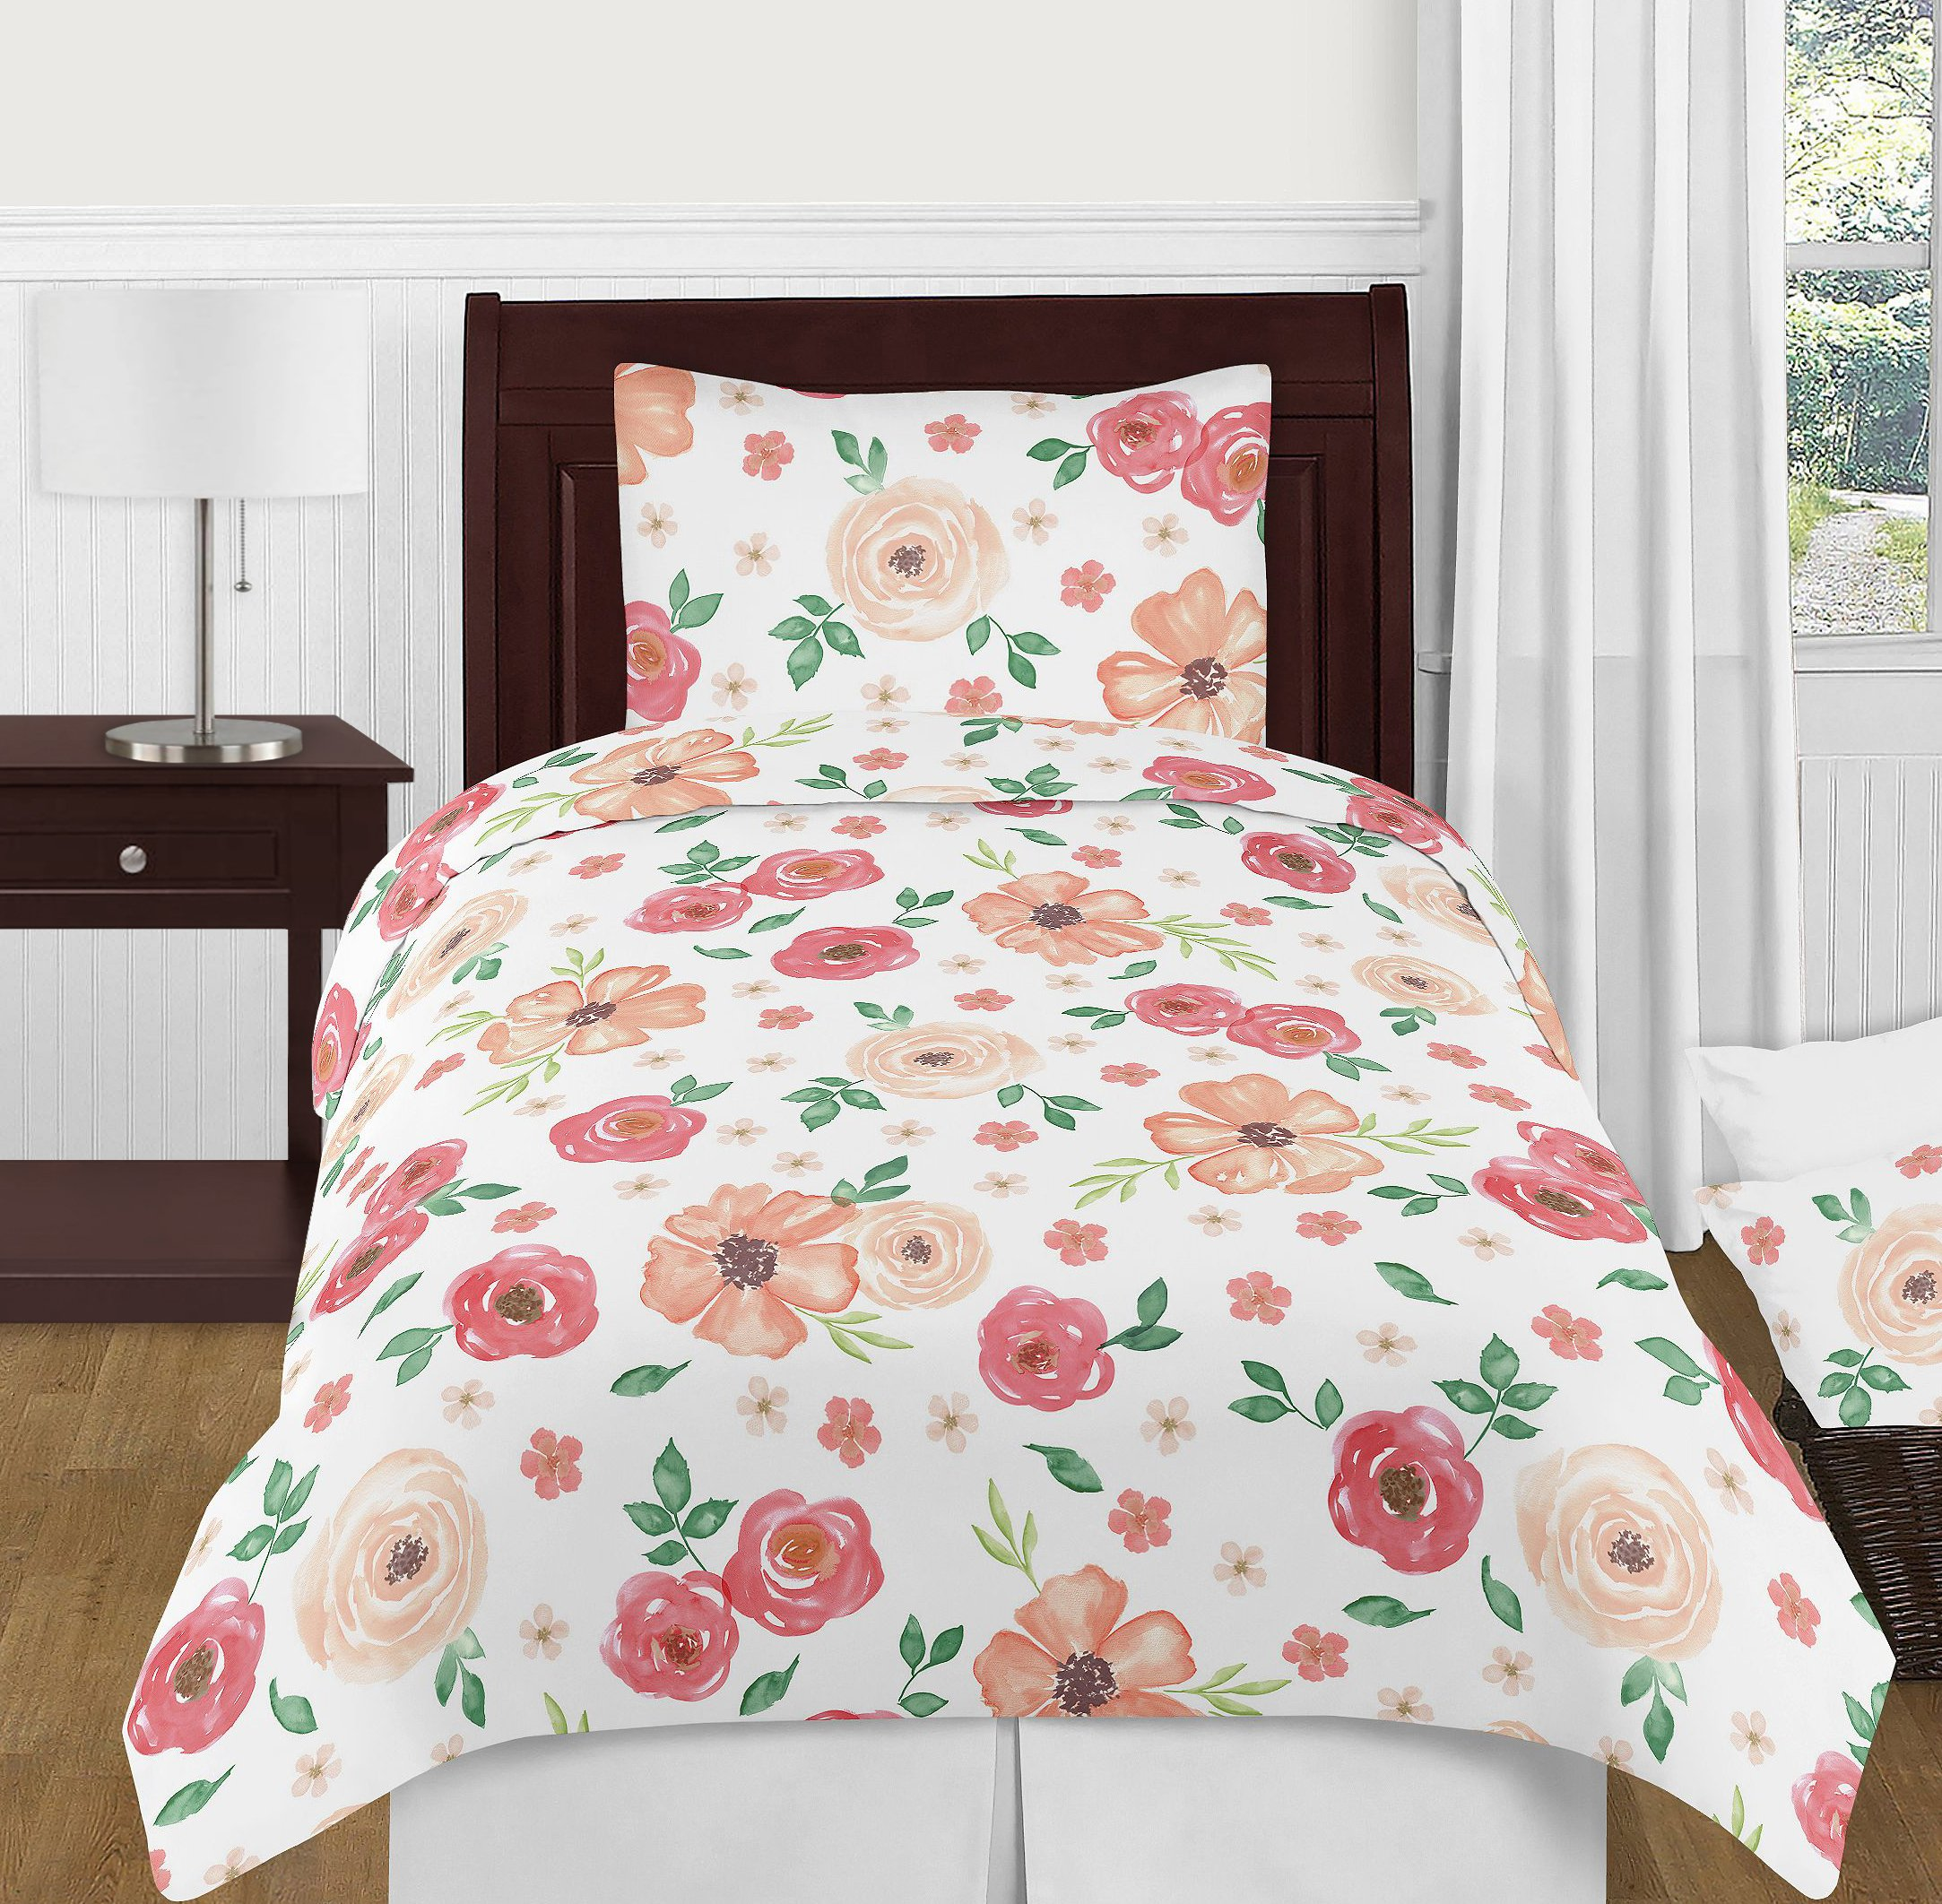 Sweet Jojo Designs Gold and White Polka Dot Pleated Twin Bed Skirt Dust Ruffle for Watercolor Floral Collection by Sweet Jojo Designs (Image #2)